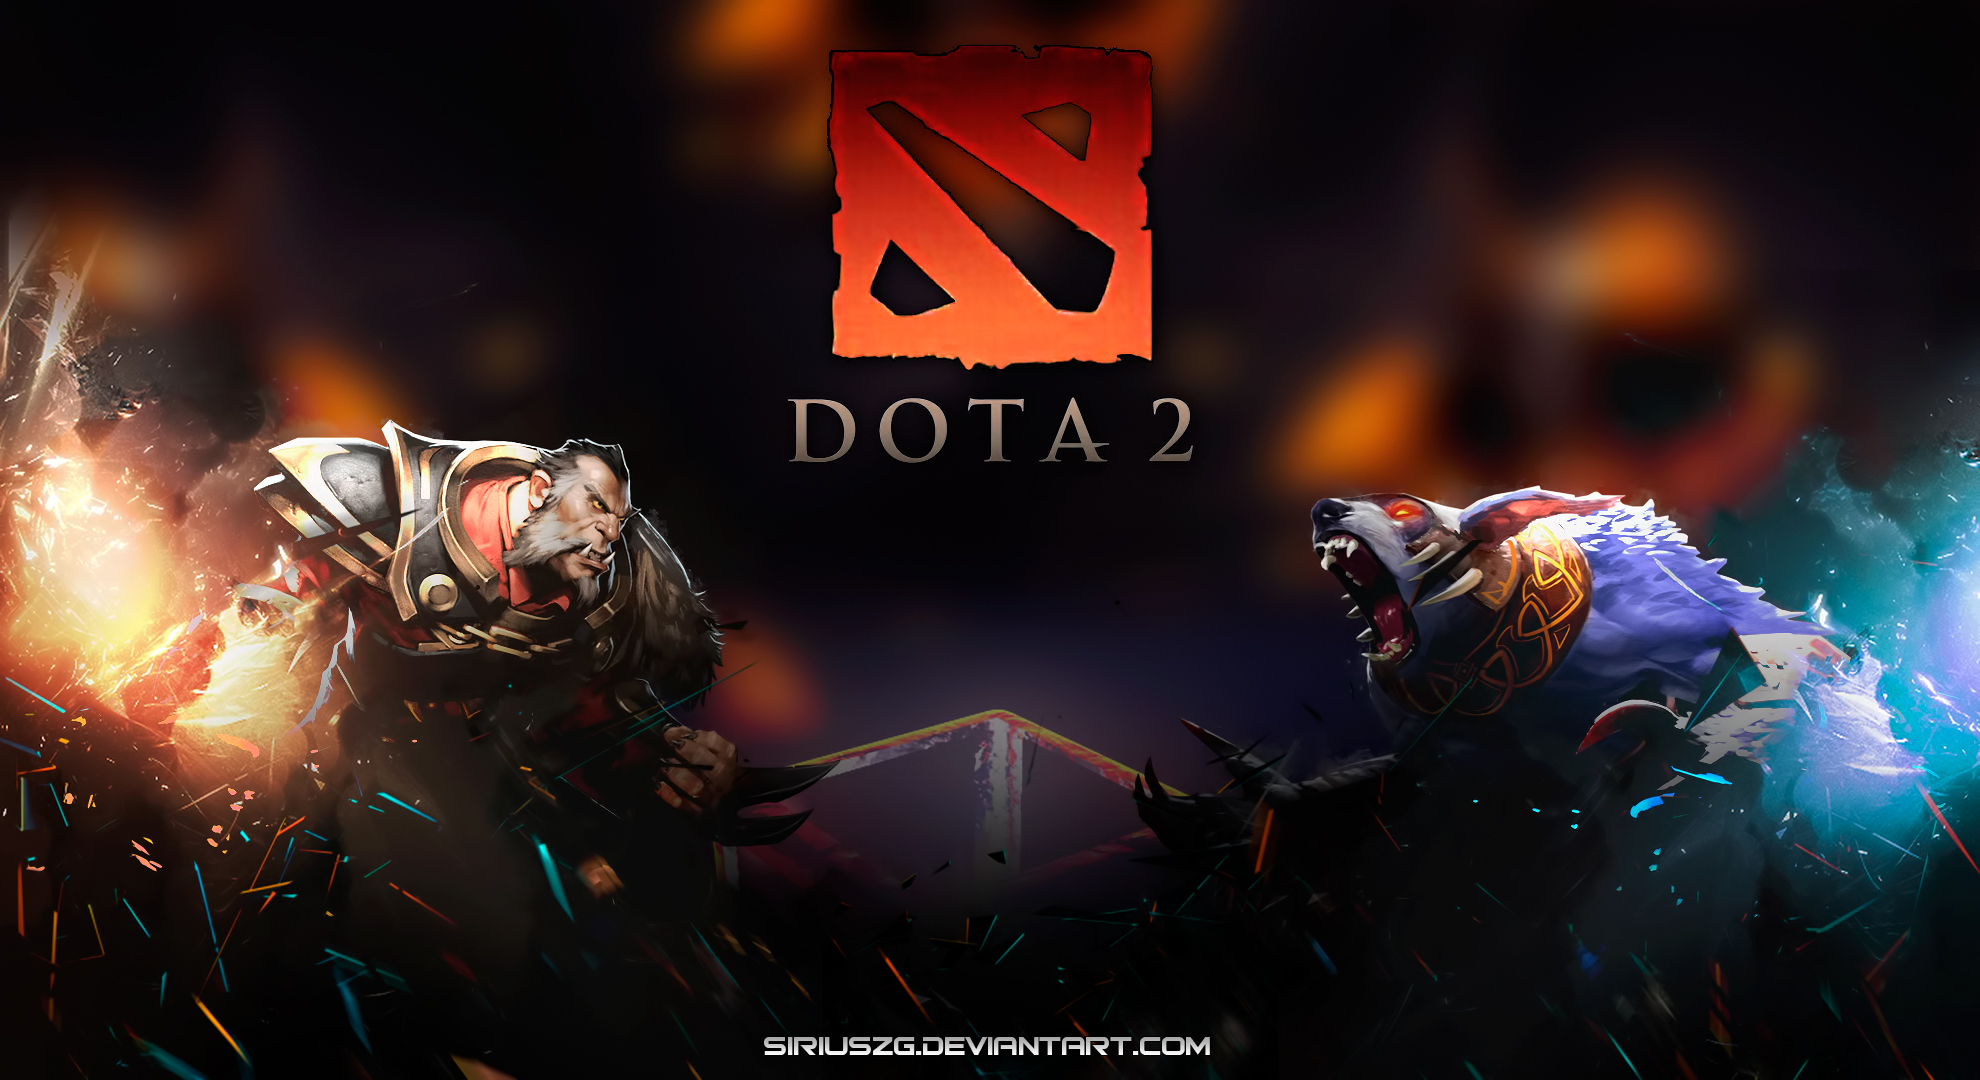 Hd wallpaper dota 2 - Banehallow And Ursa Warrior Ulfsaar Dota 2 Game Hd Wallpaper 1920x1080